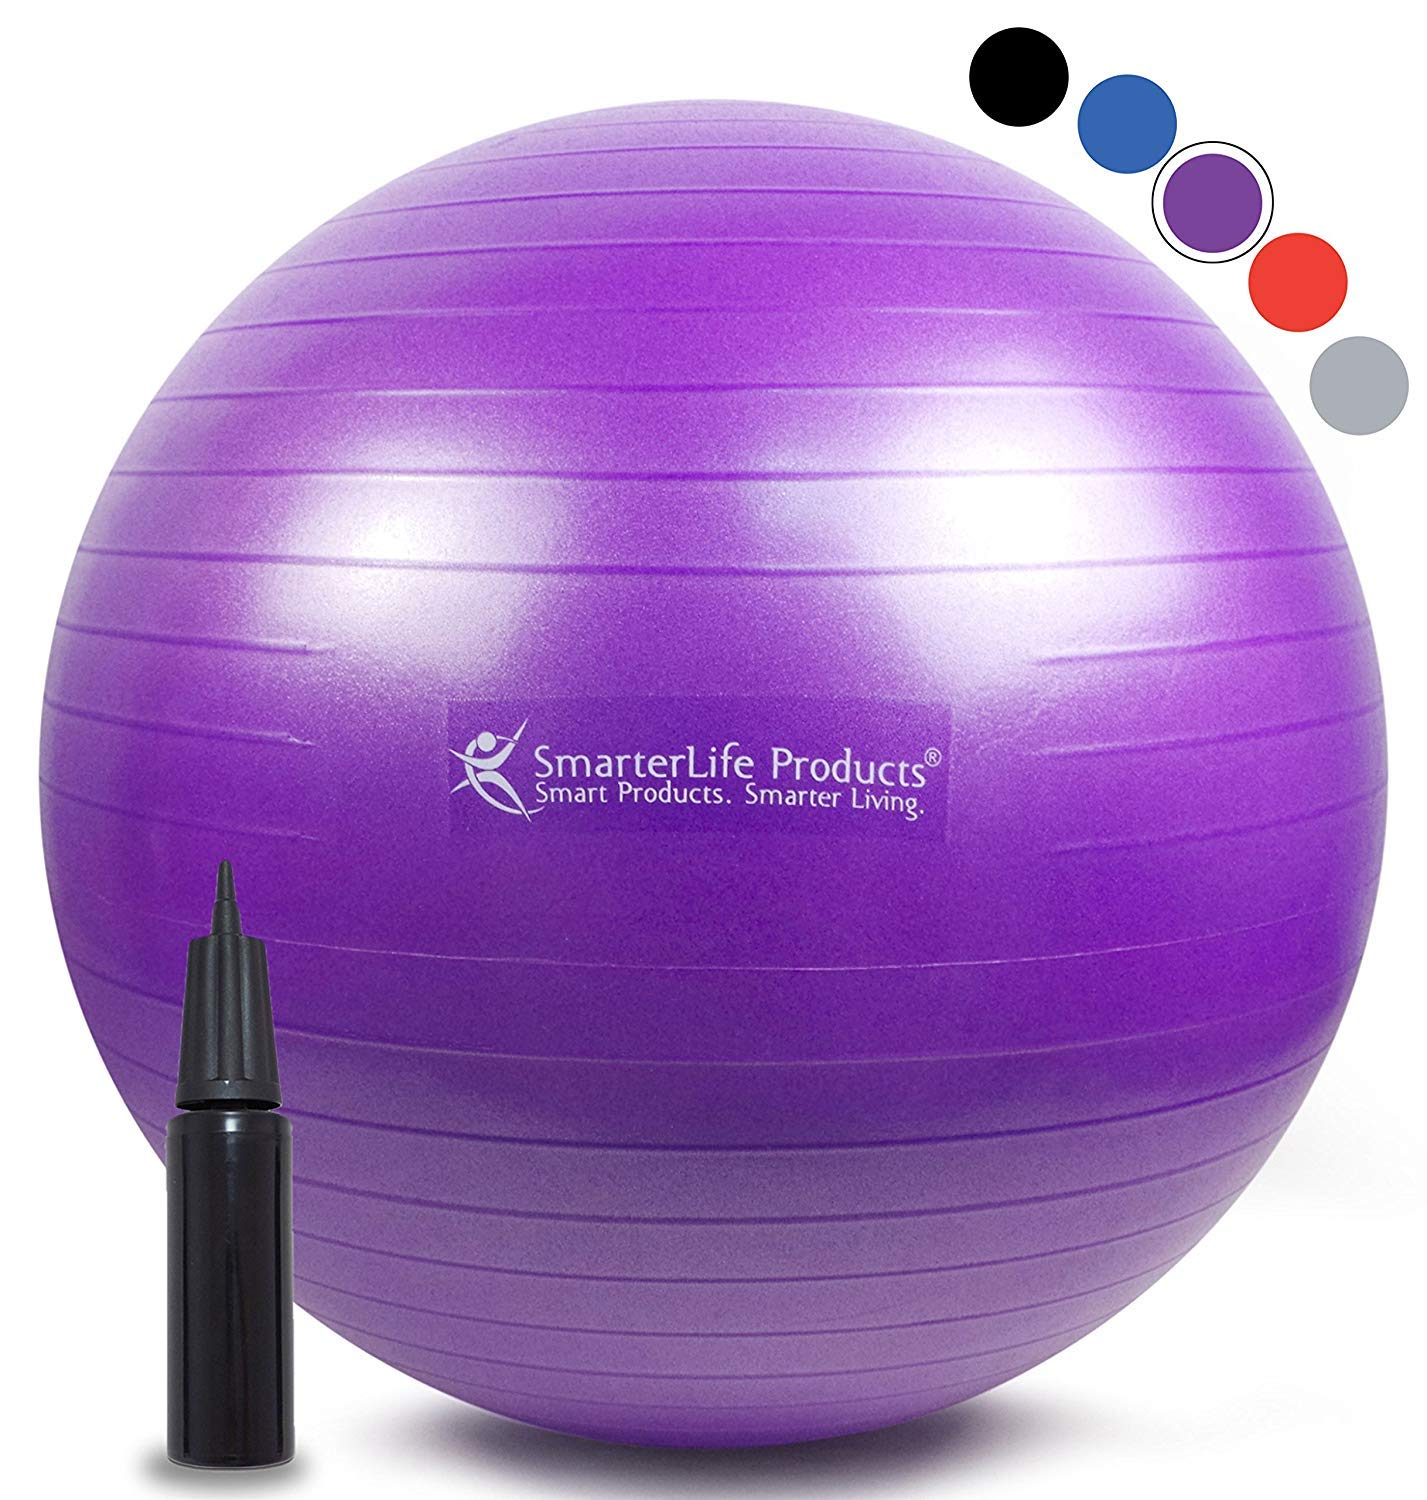 SmarterLife Exercise Ball for Yoga, Balance, Stability – Fitness, Pilates, Birthing, Therapy, Office Ball Chair, Classroom Flexible Seating – Anti Burst, No Slip, Workout Guide